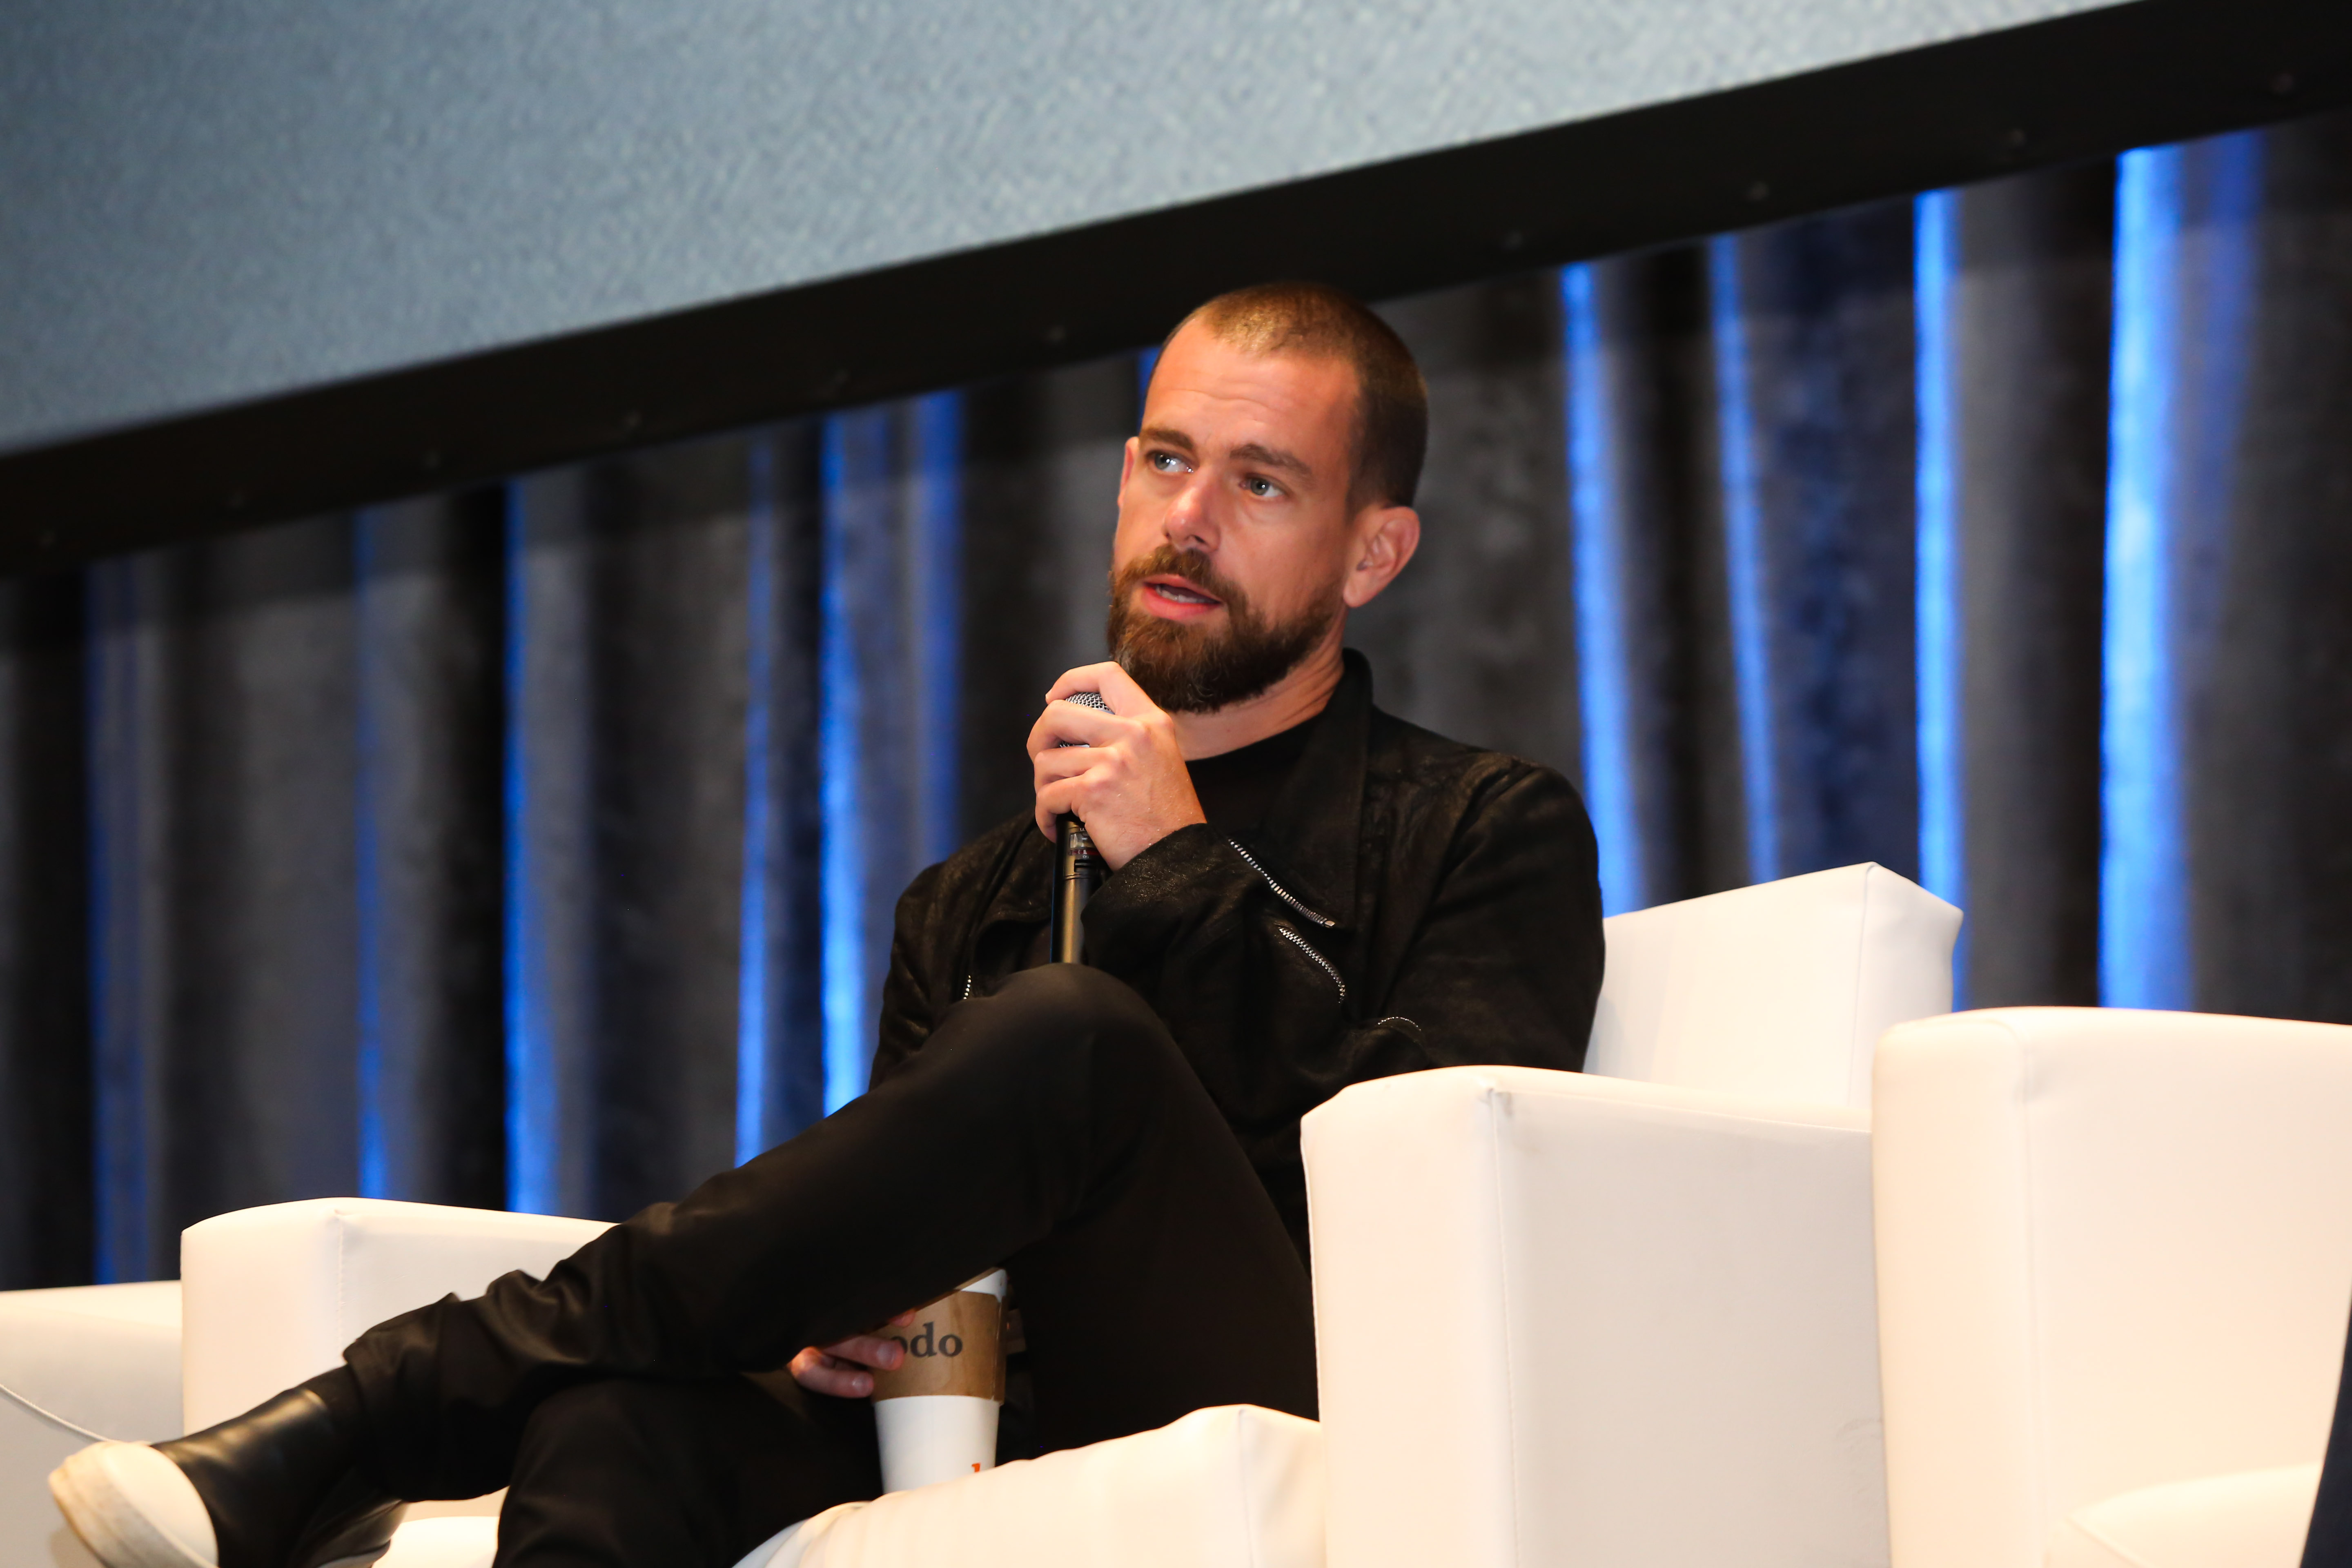 Square Crypto Lead: 'The Product We're Focusing on Is